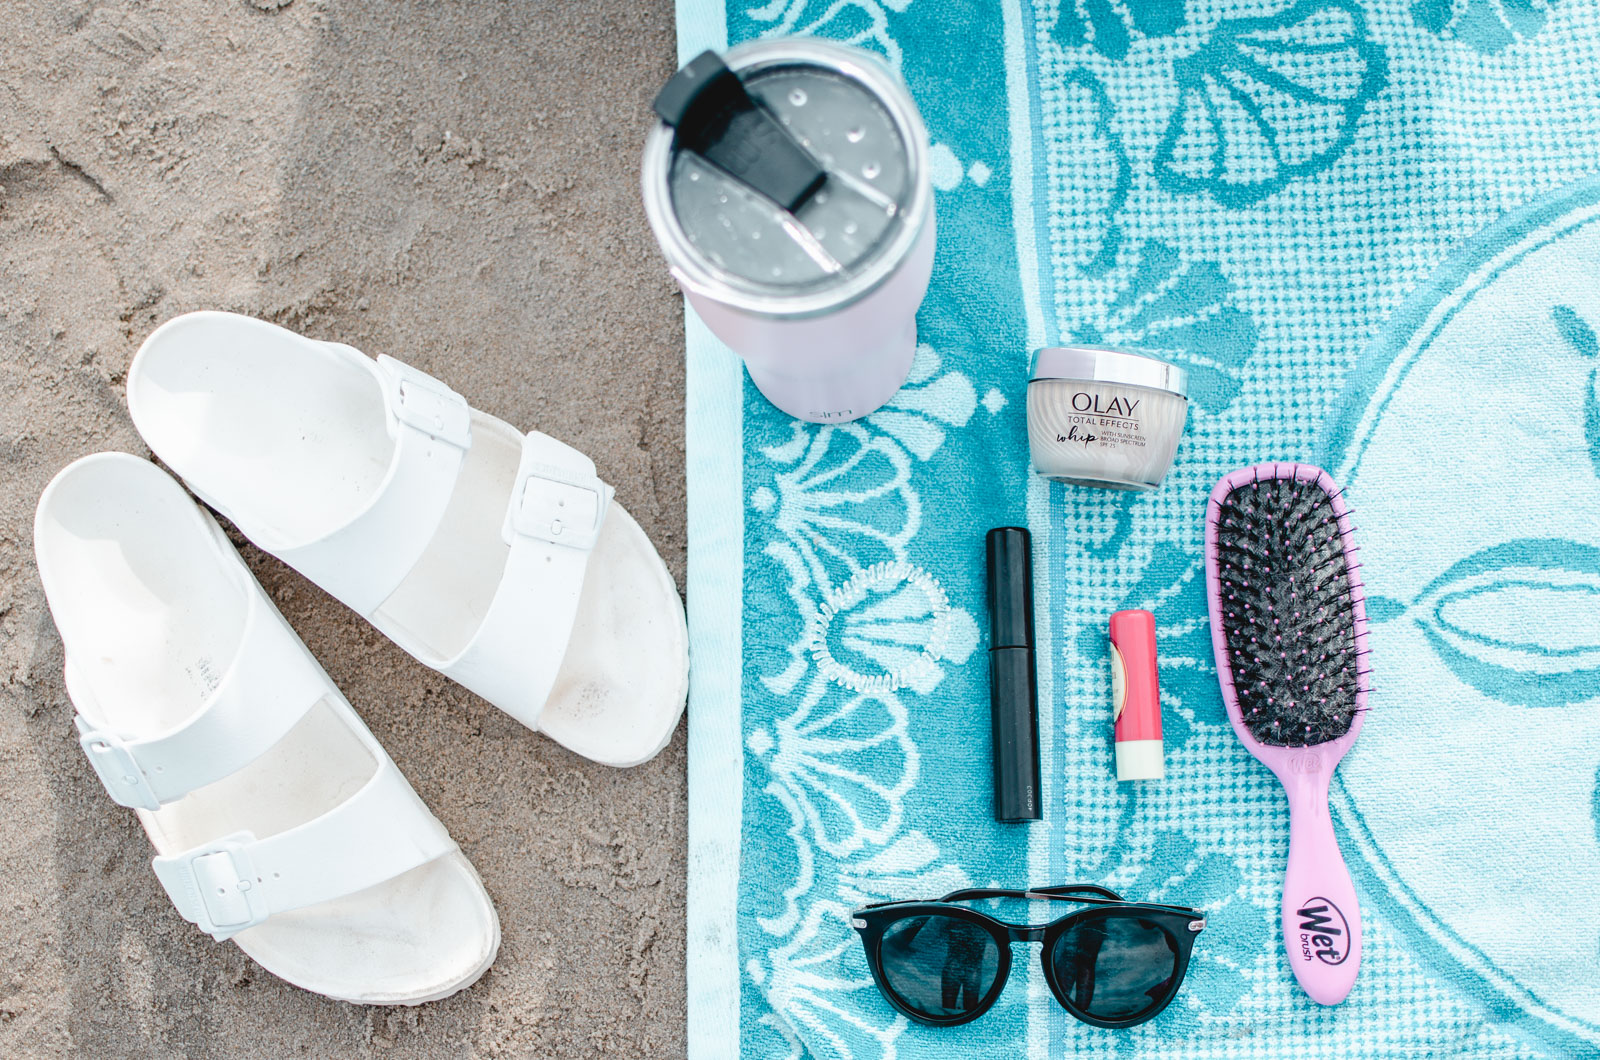 beach beauty essentials - the beauty products I love for a day in the sun! | bylaurenm.com